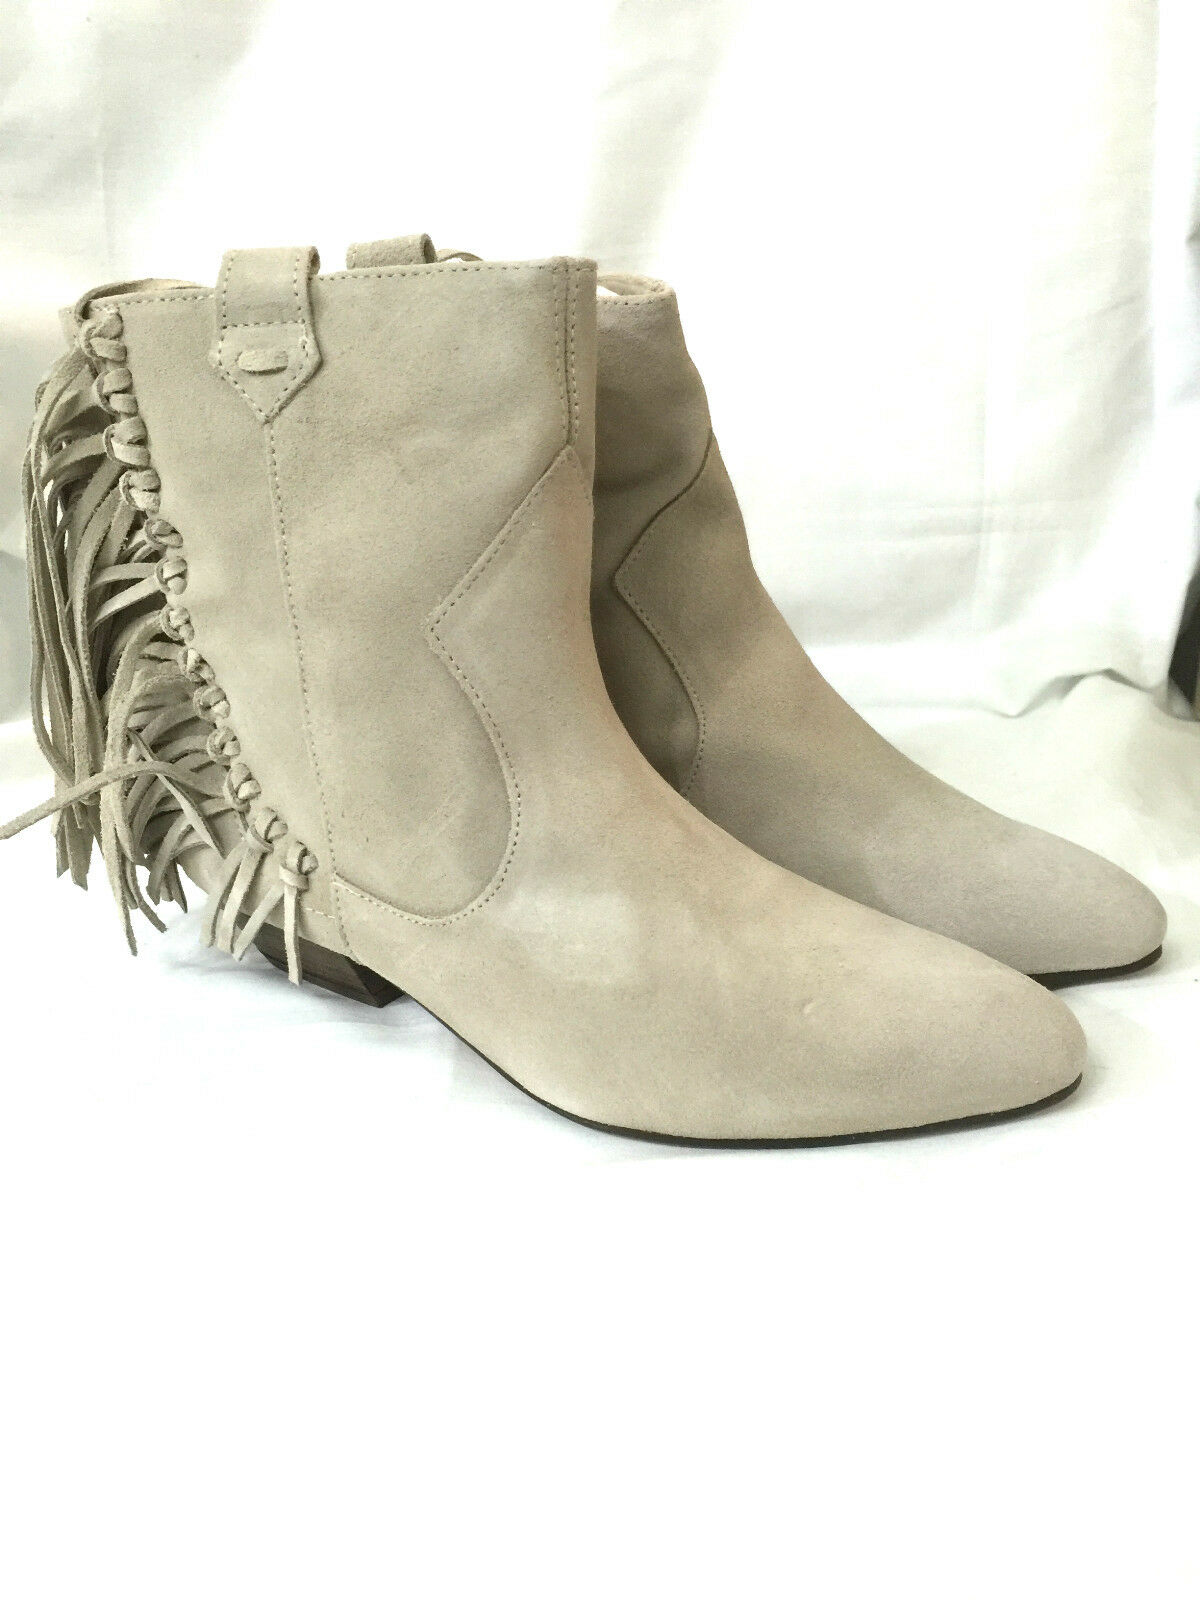 ZARA BEIGE LEATHER FRINGE ANKLE ANKLE ANKLE BOOTS SIZE 37_38_39_40 NEW WITH BOX a85ce9